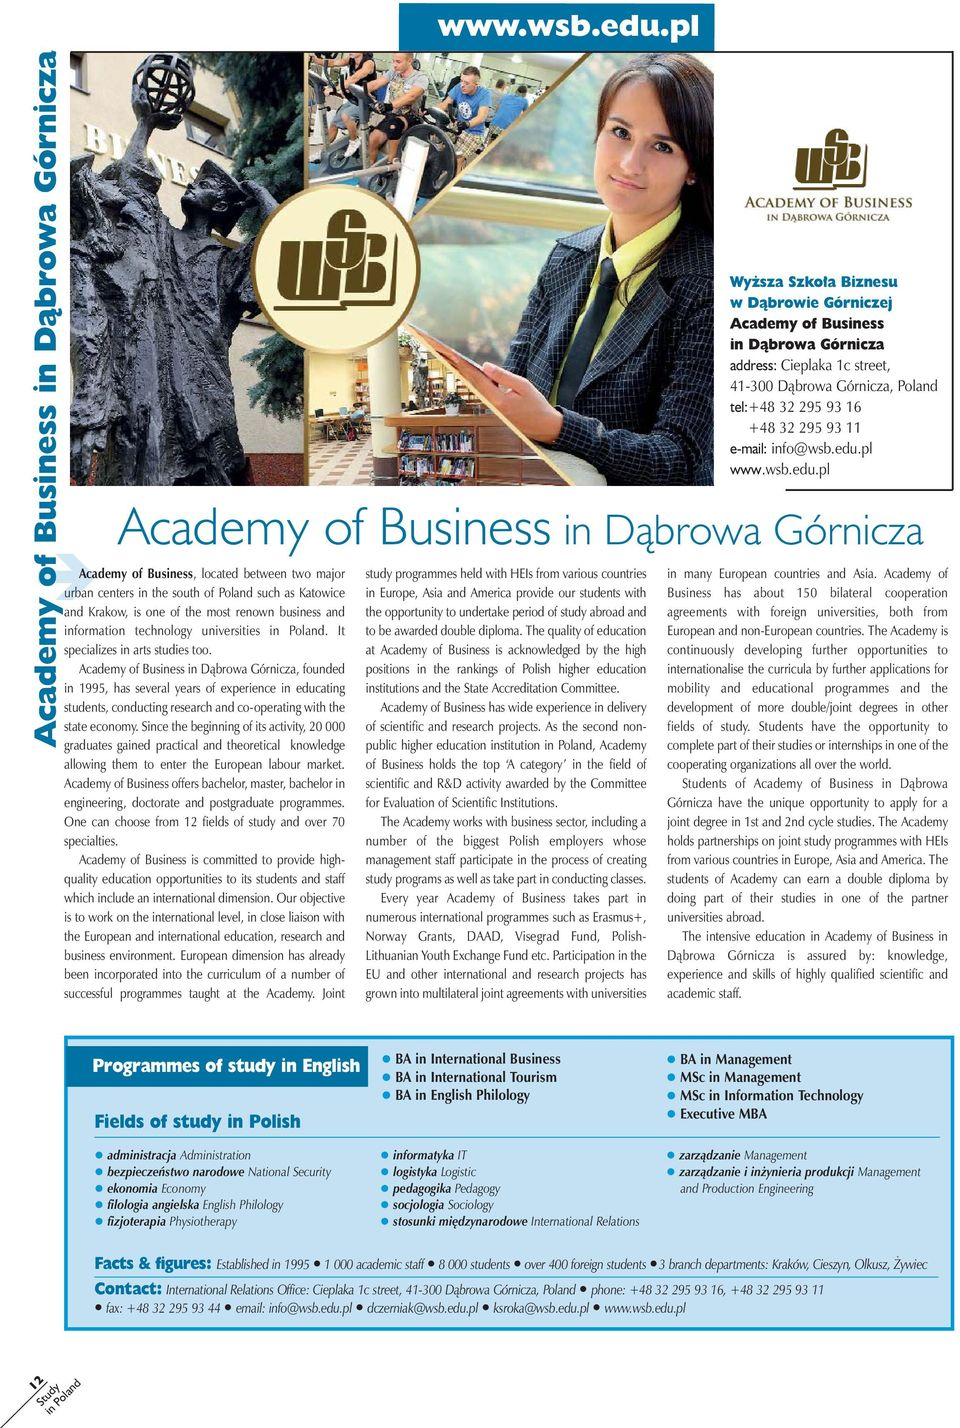 Academy of Business in Dąbrowa Górnicza, founded in 1995, has several years of experience in educ